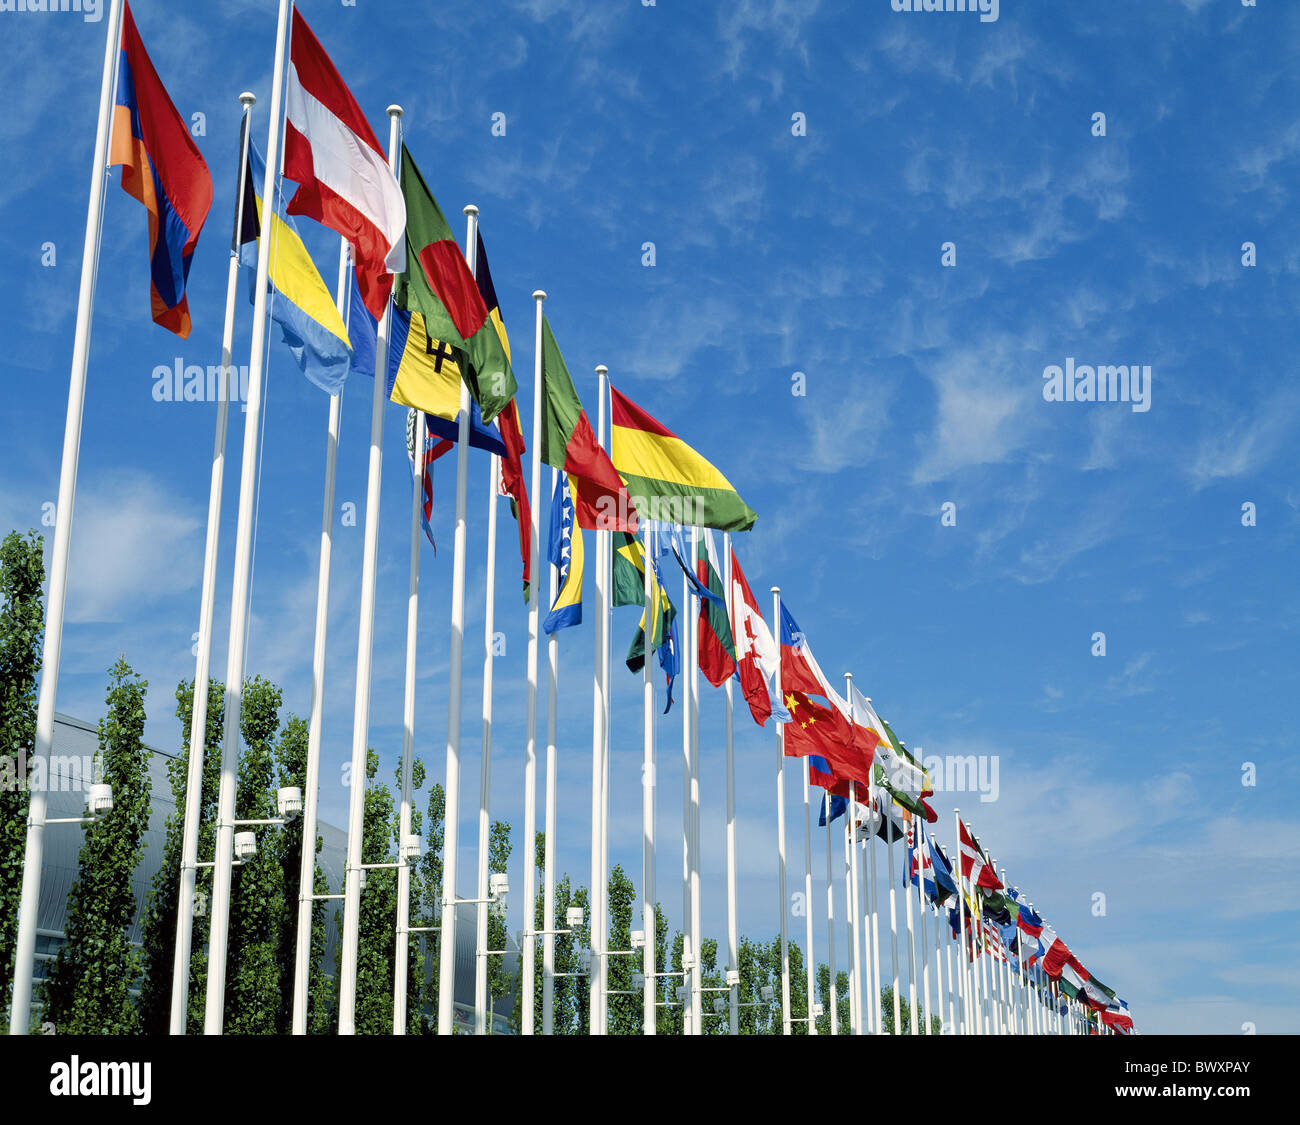 flags flags banners flag row geography internationally Lisbon Portugal - Stock Image